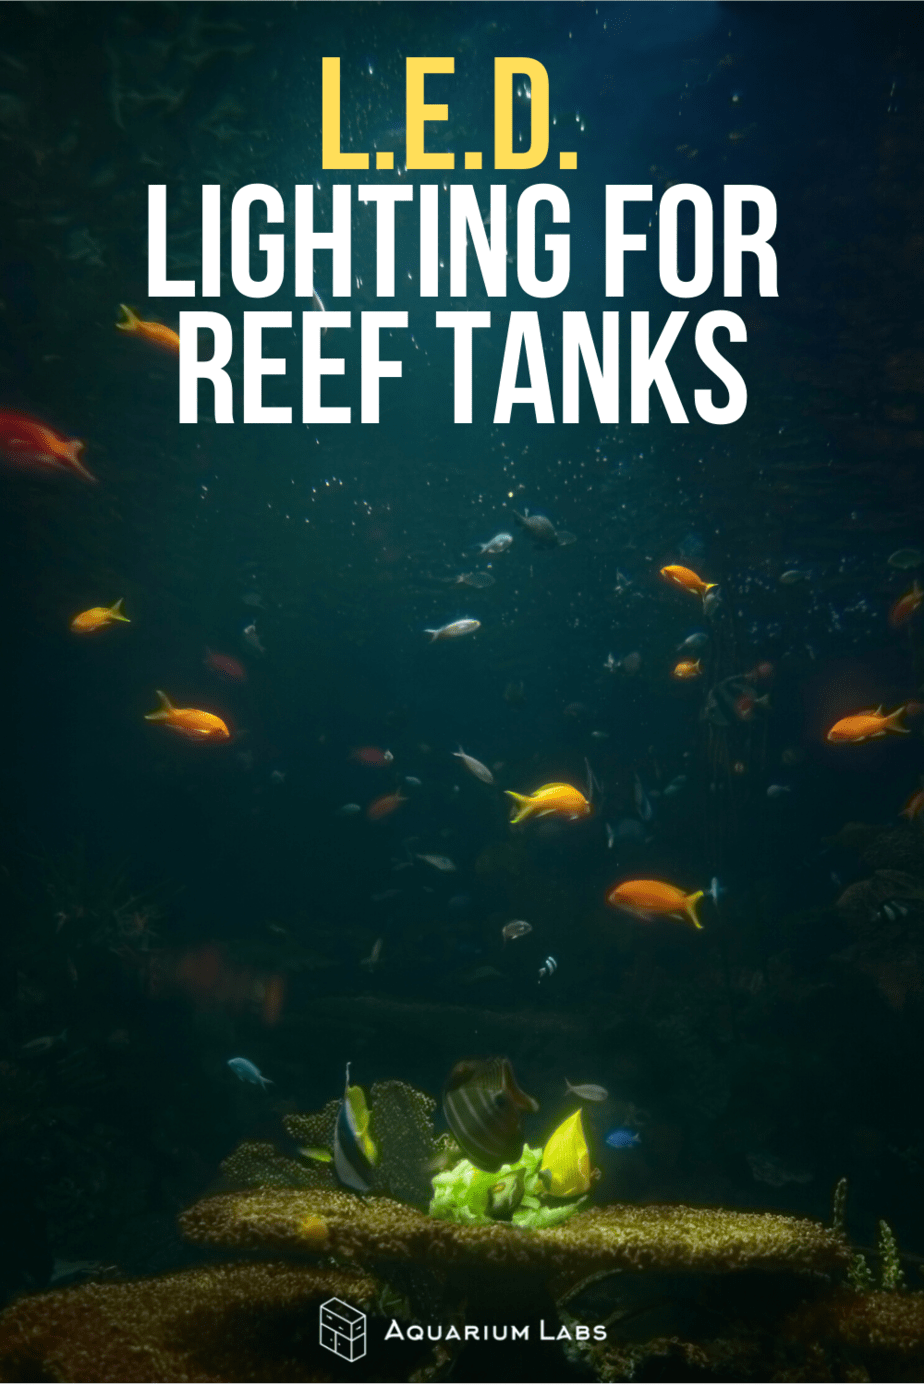 LED Lighting for Reef Tank